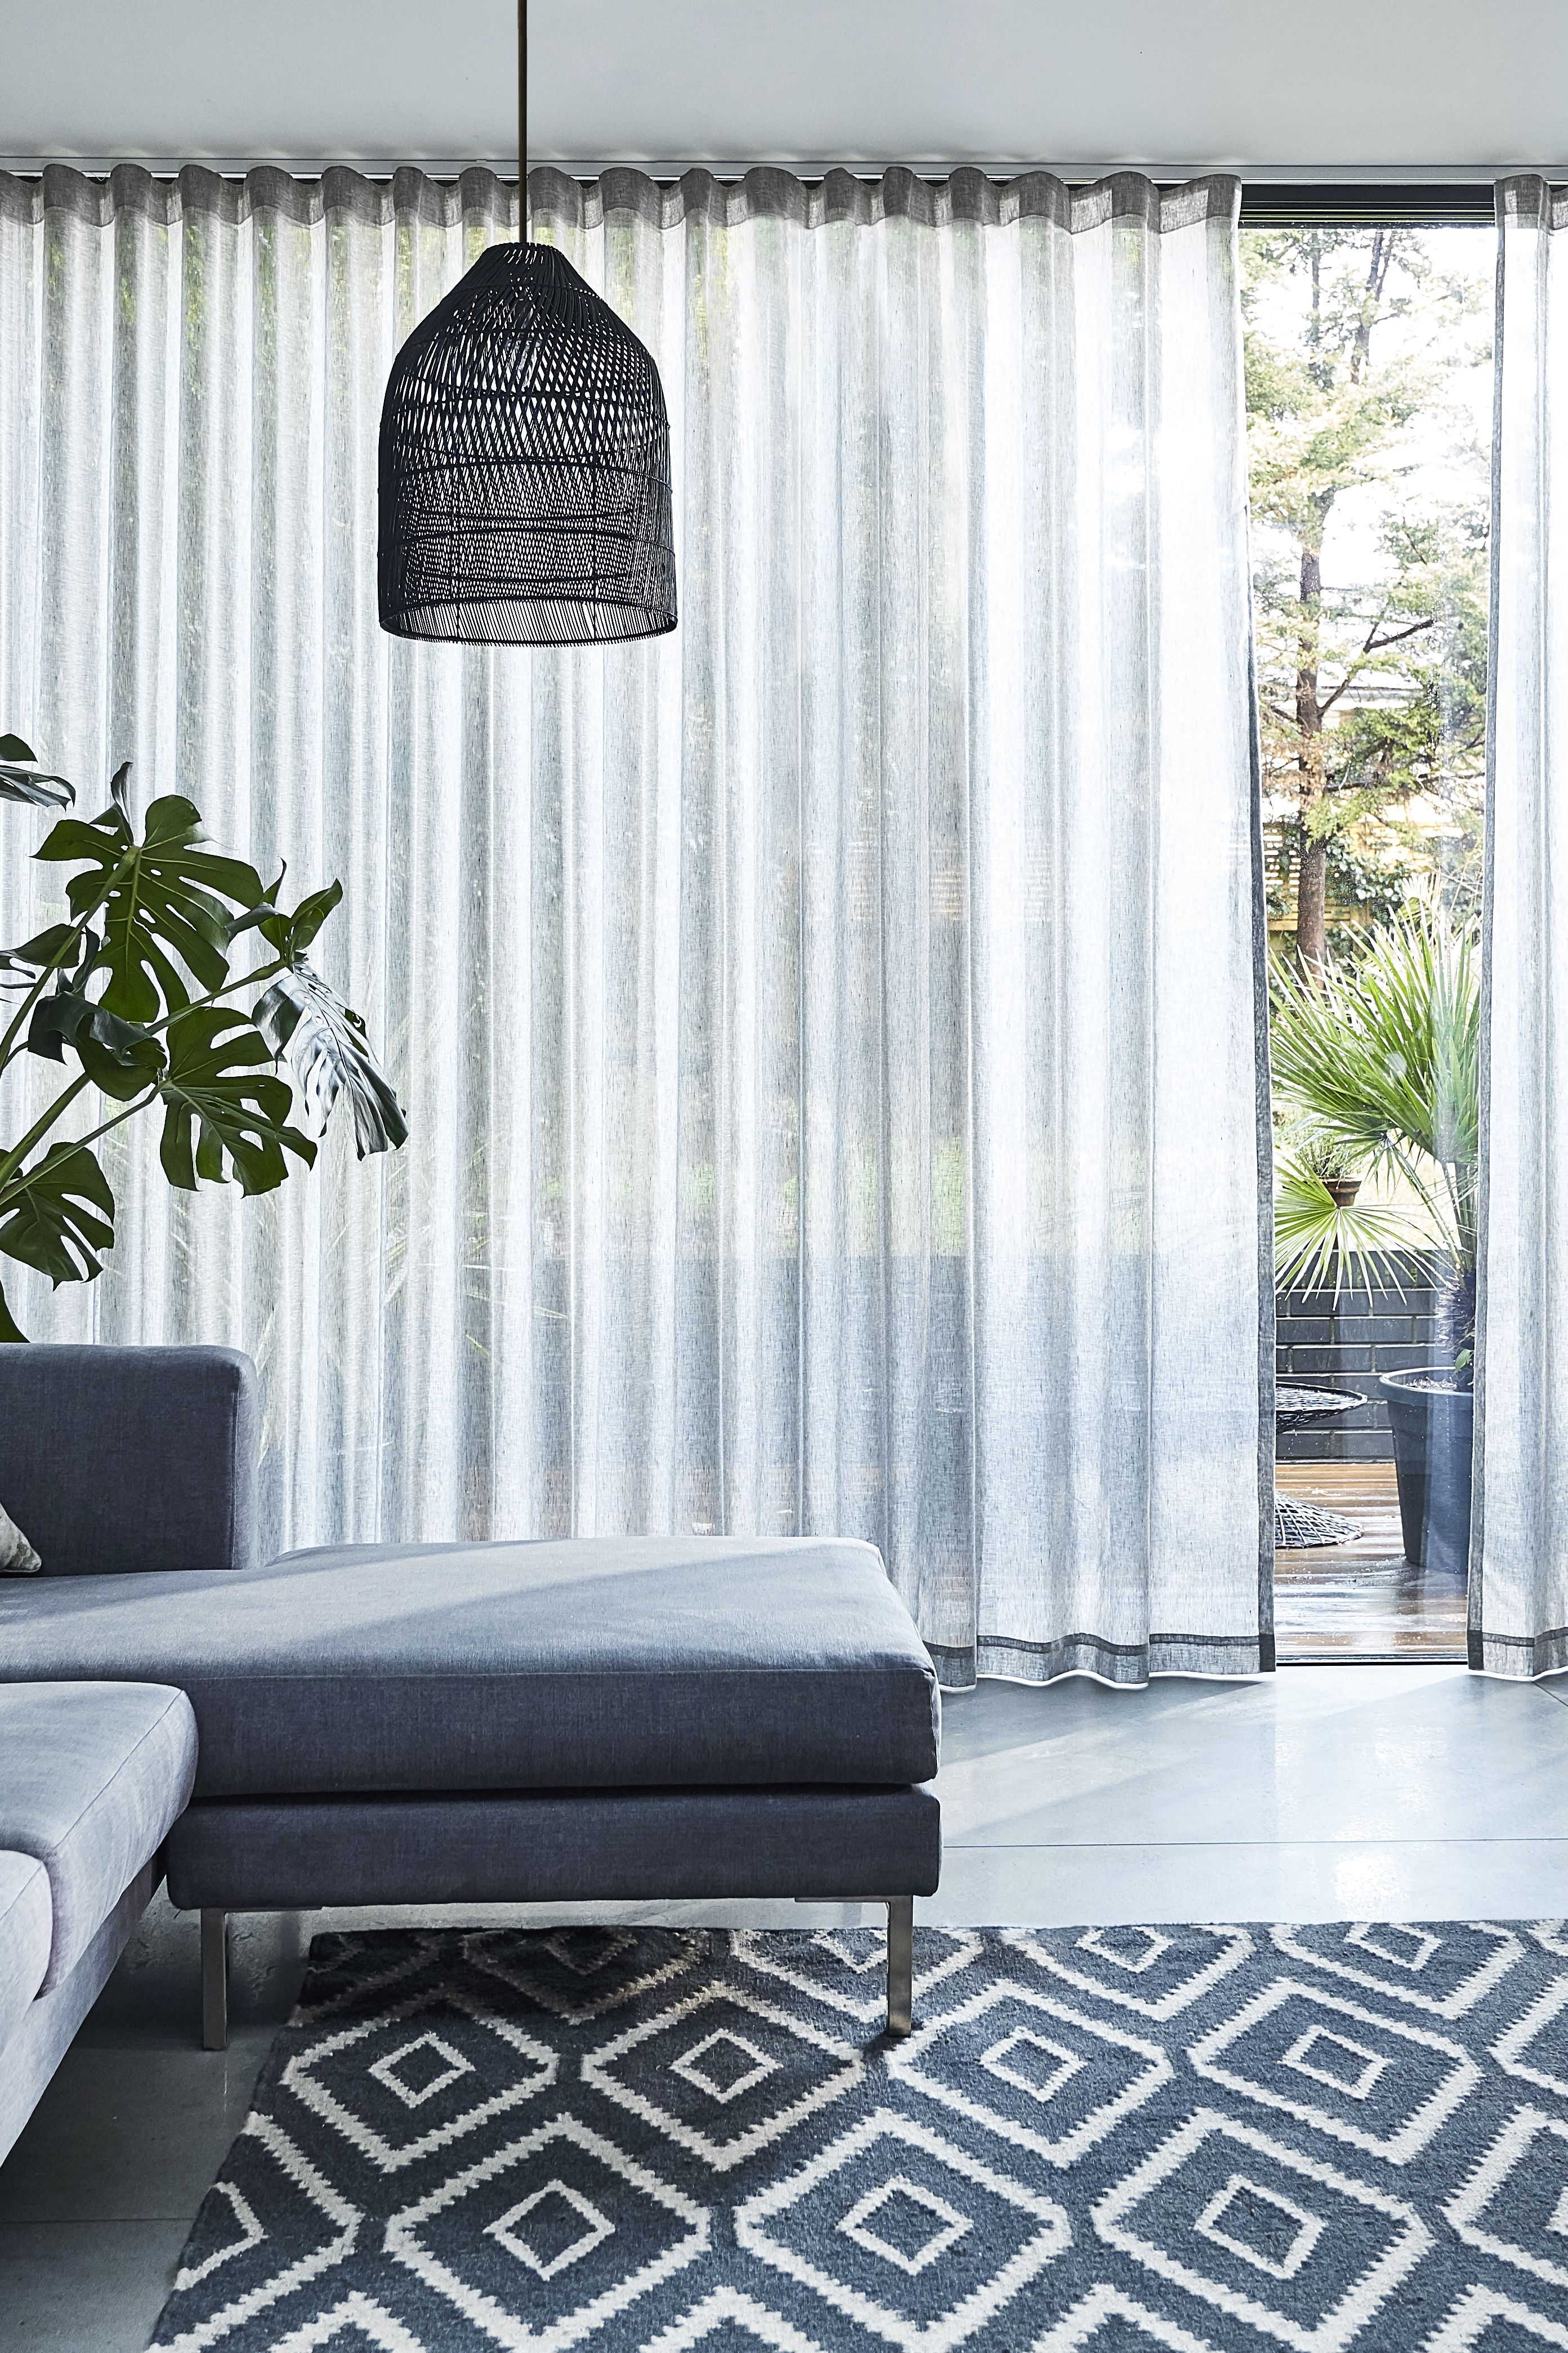 Wave Thorens Voile Smoke Curtains Contemporary Curtains Window